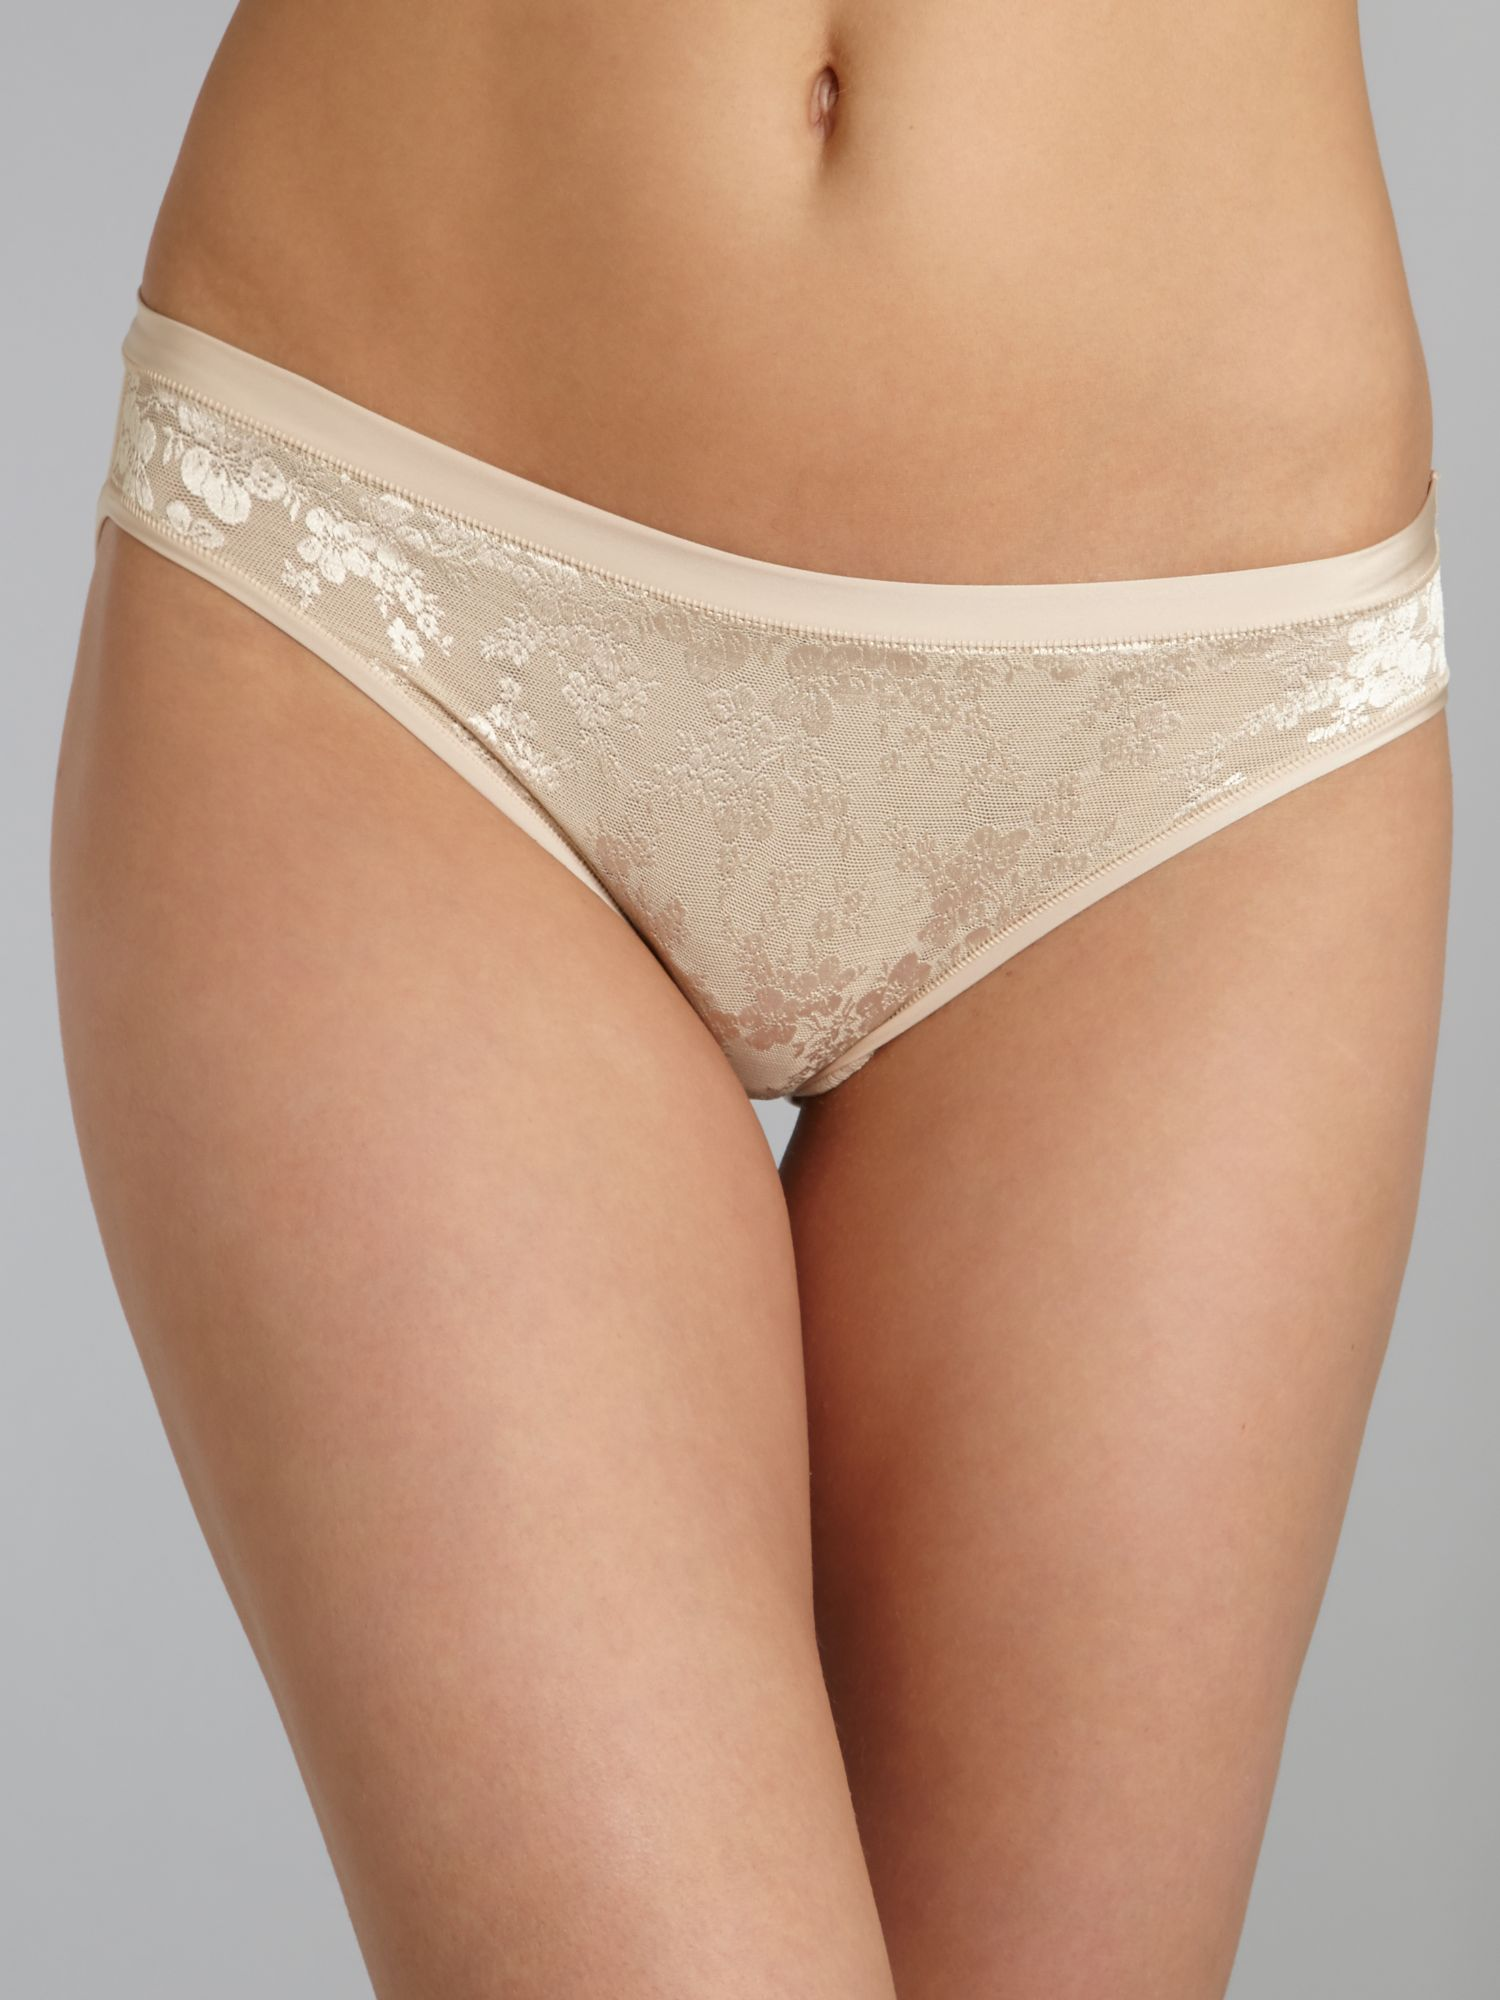 Body makeup lace tai brief